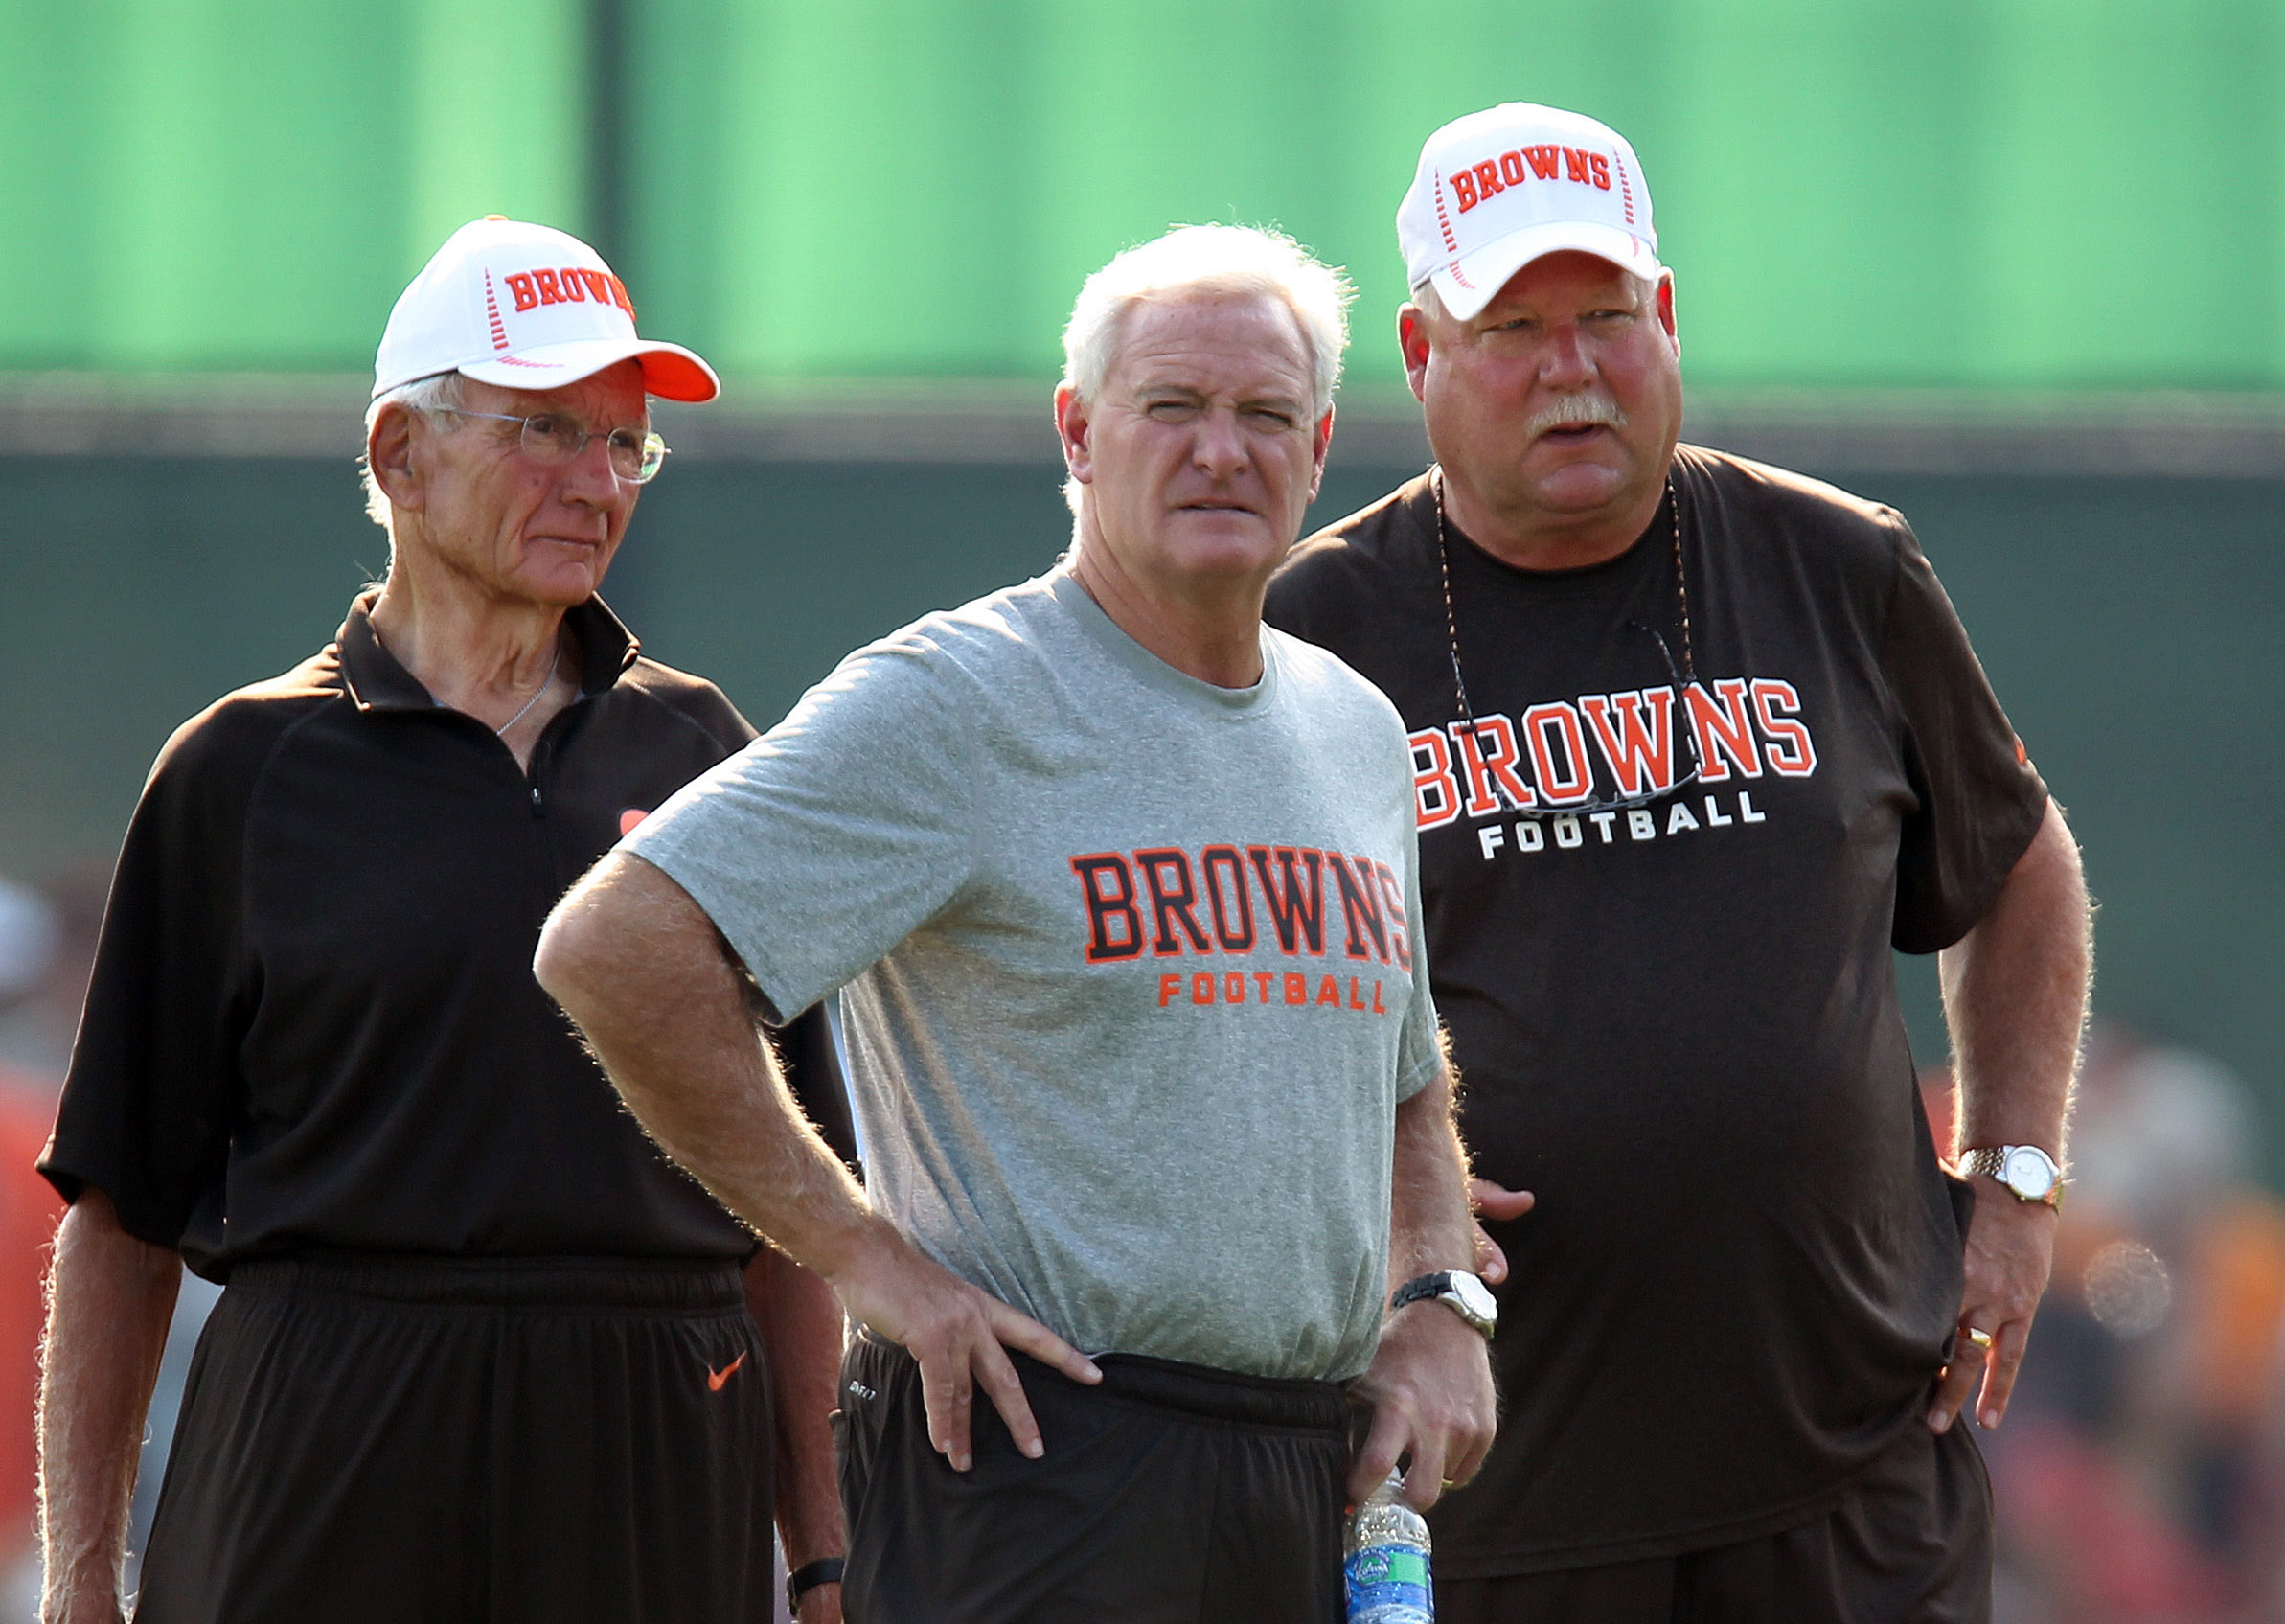 new browns owner thinking big